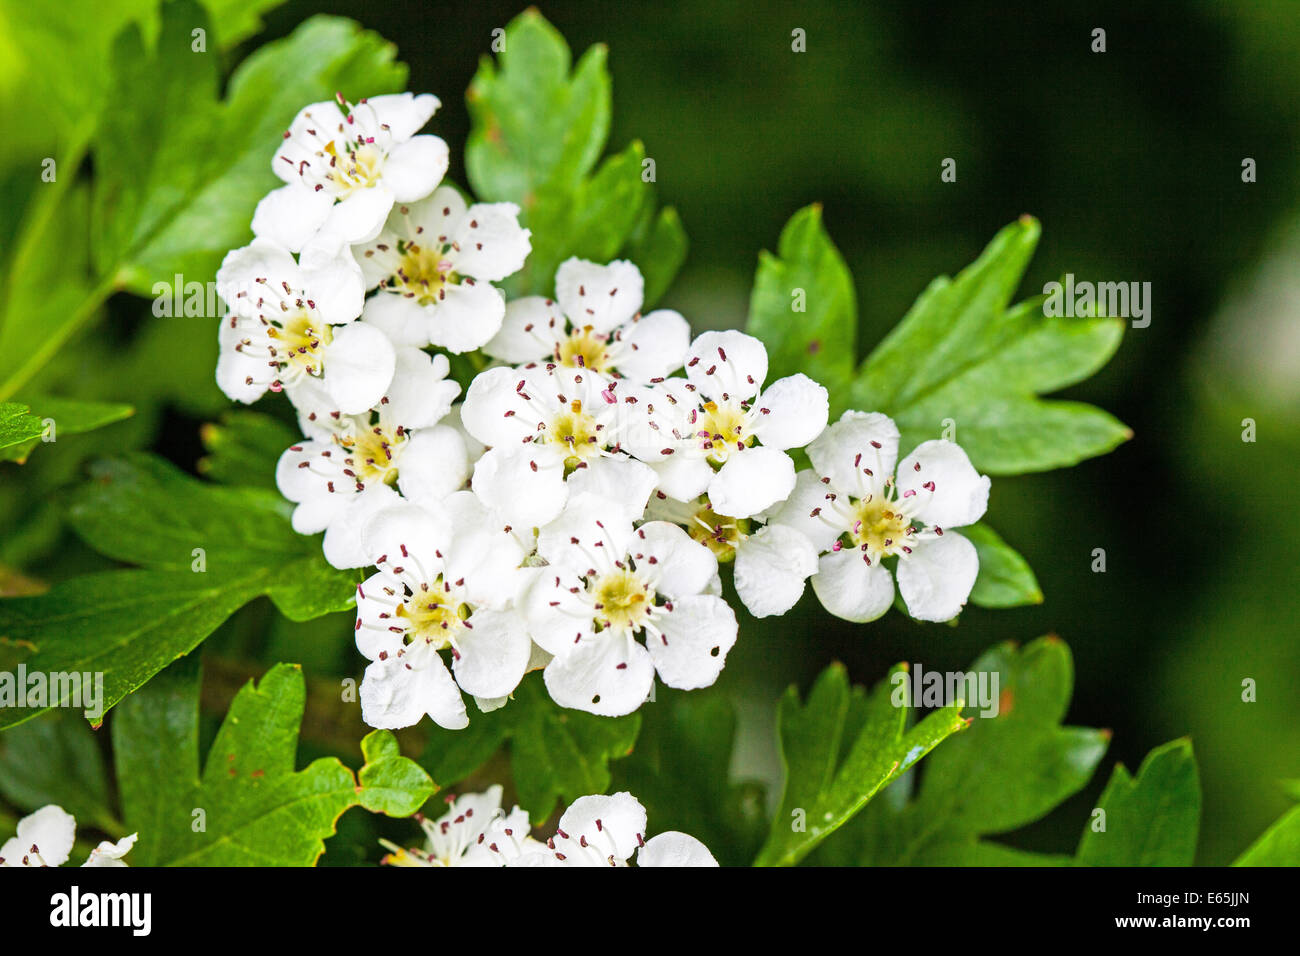 Crataegus commonly called hawthorn or may blossom white flowers crataegus commonly called hawthorn or may blossom white flowers mightylinksfo